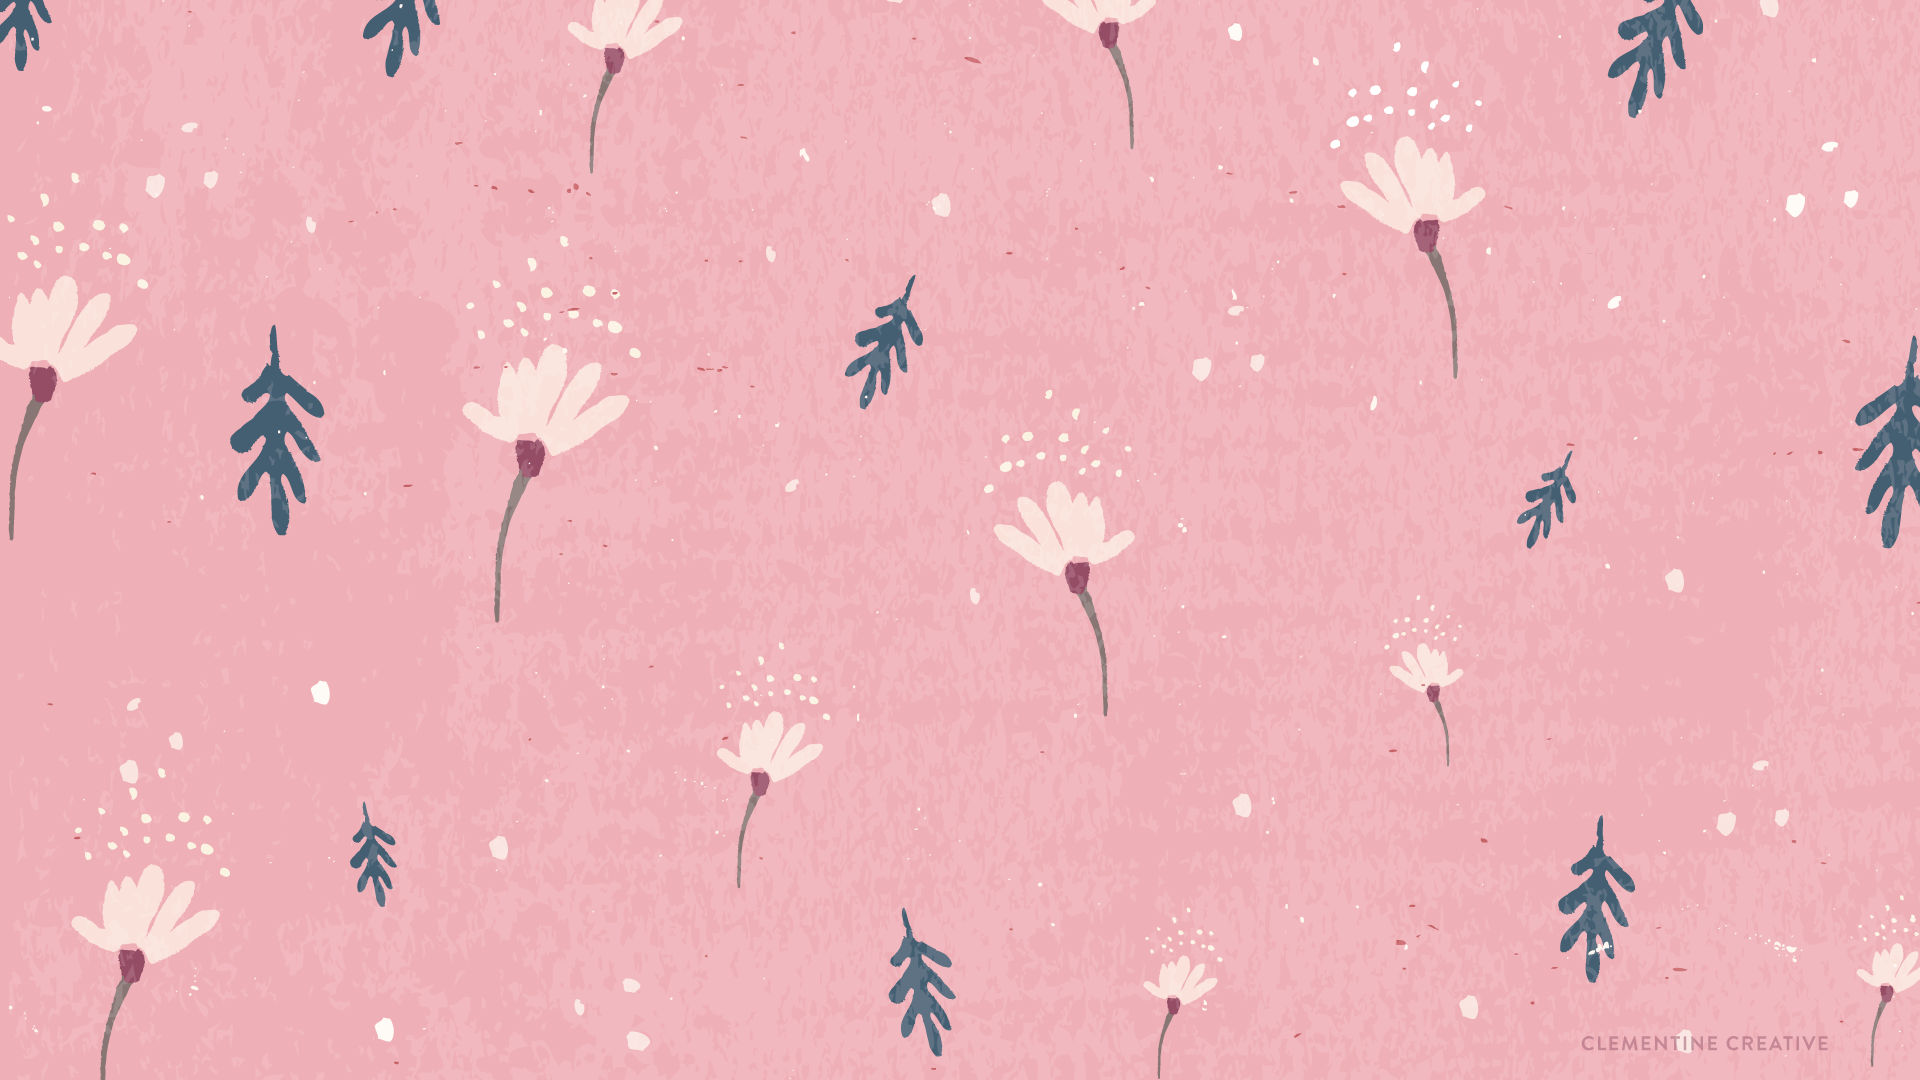 Free Wallpaper Dainty Falling Flowers Pink Wallpaper